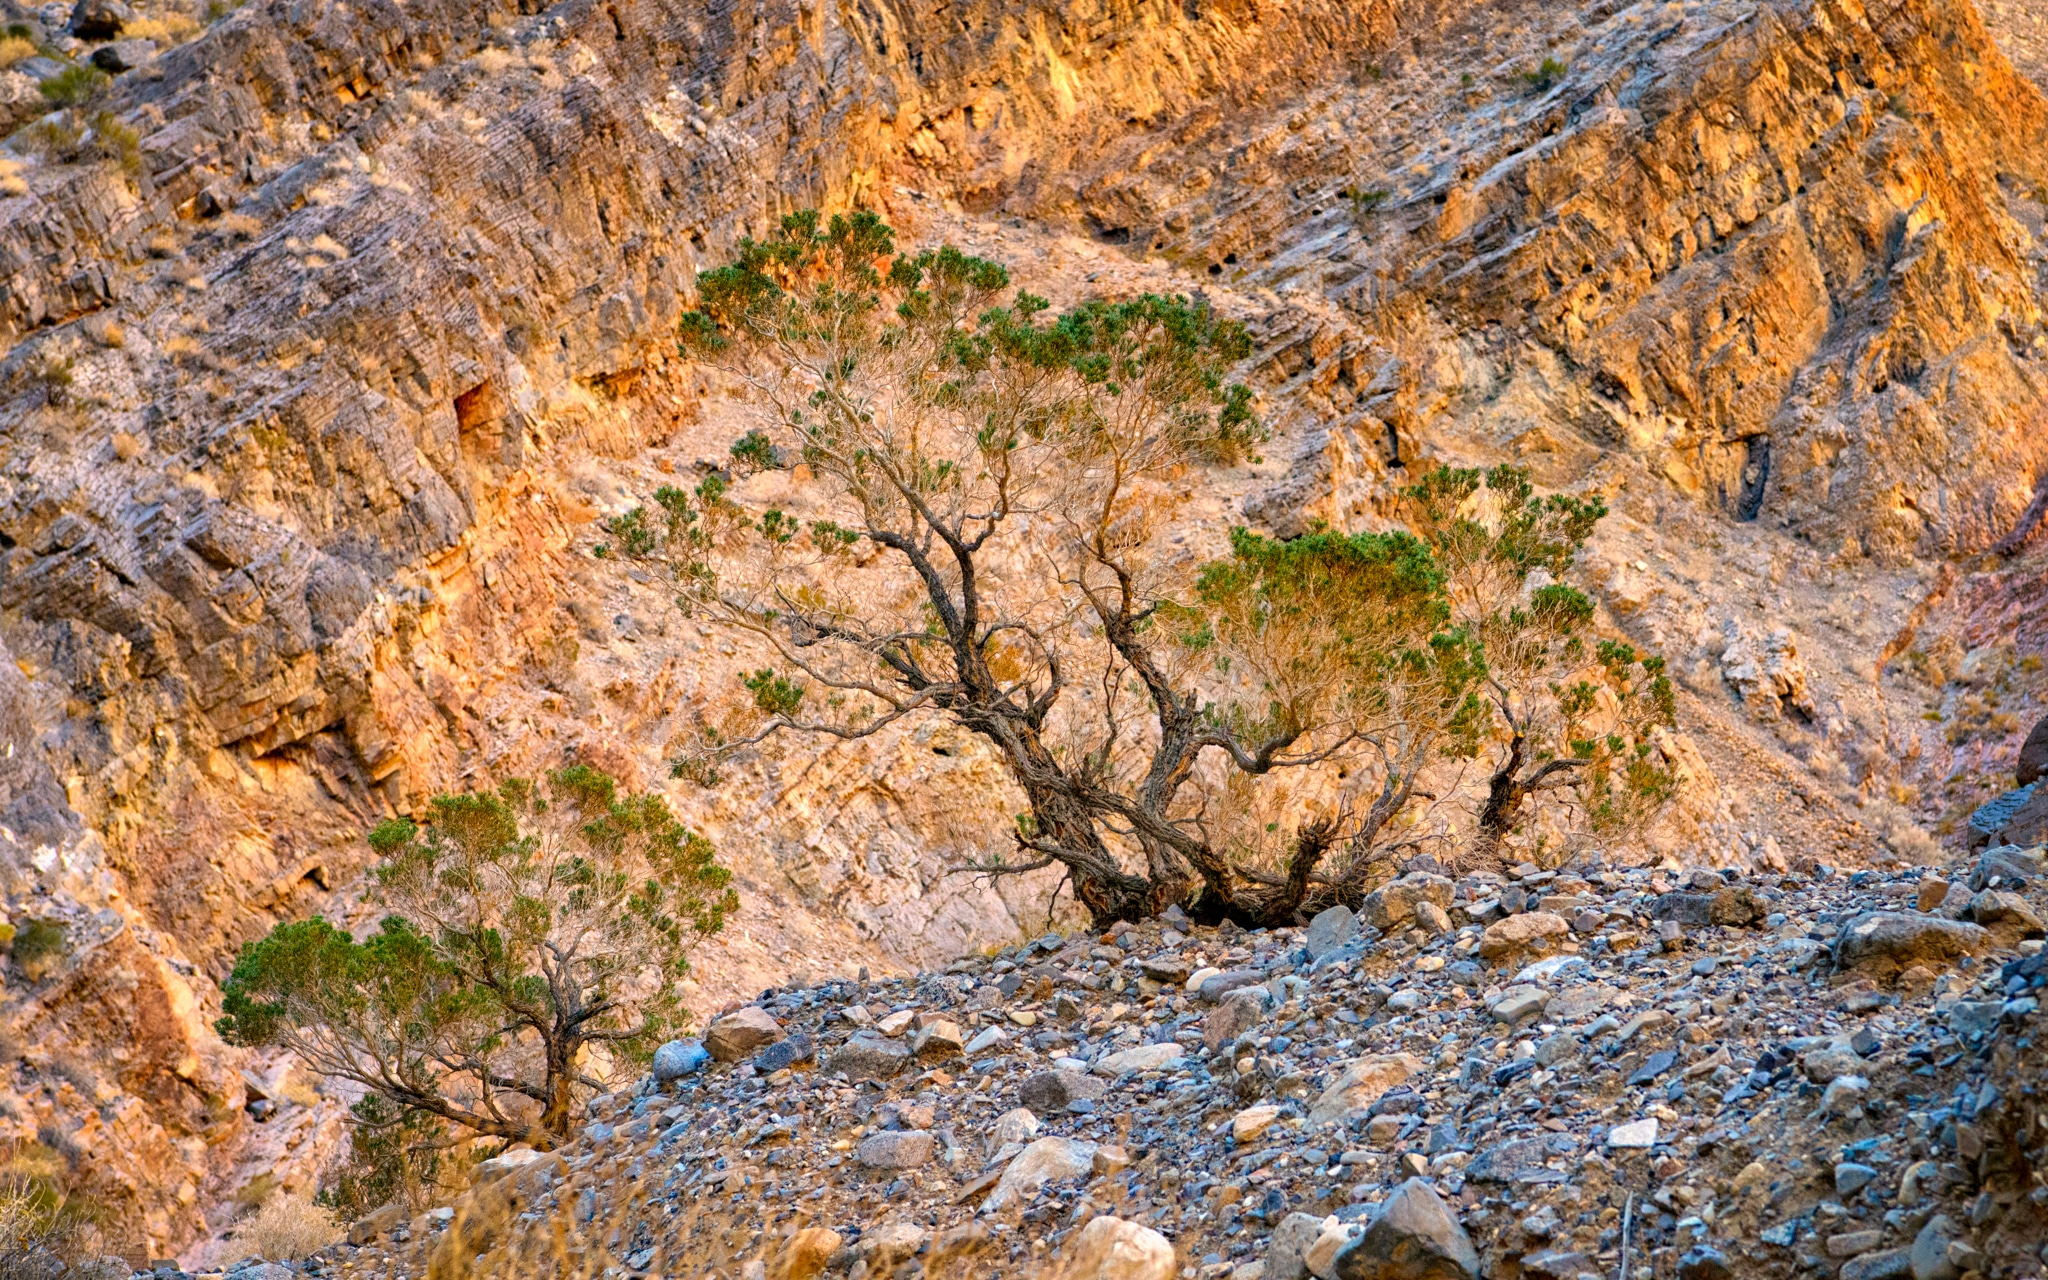 A stunted juniper grows in the alluvial debris on the floor of Marble Canyon. Marble Canyon is accessible from a dirt road that heads west from the airstrip at Stovepipe Wells in Death Valley National Park, California.